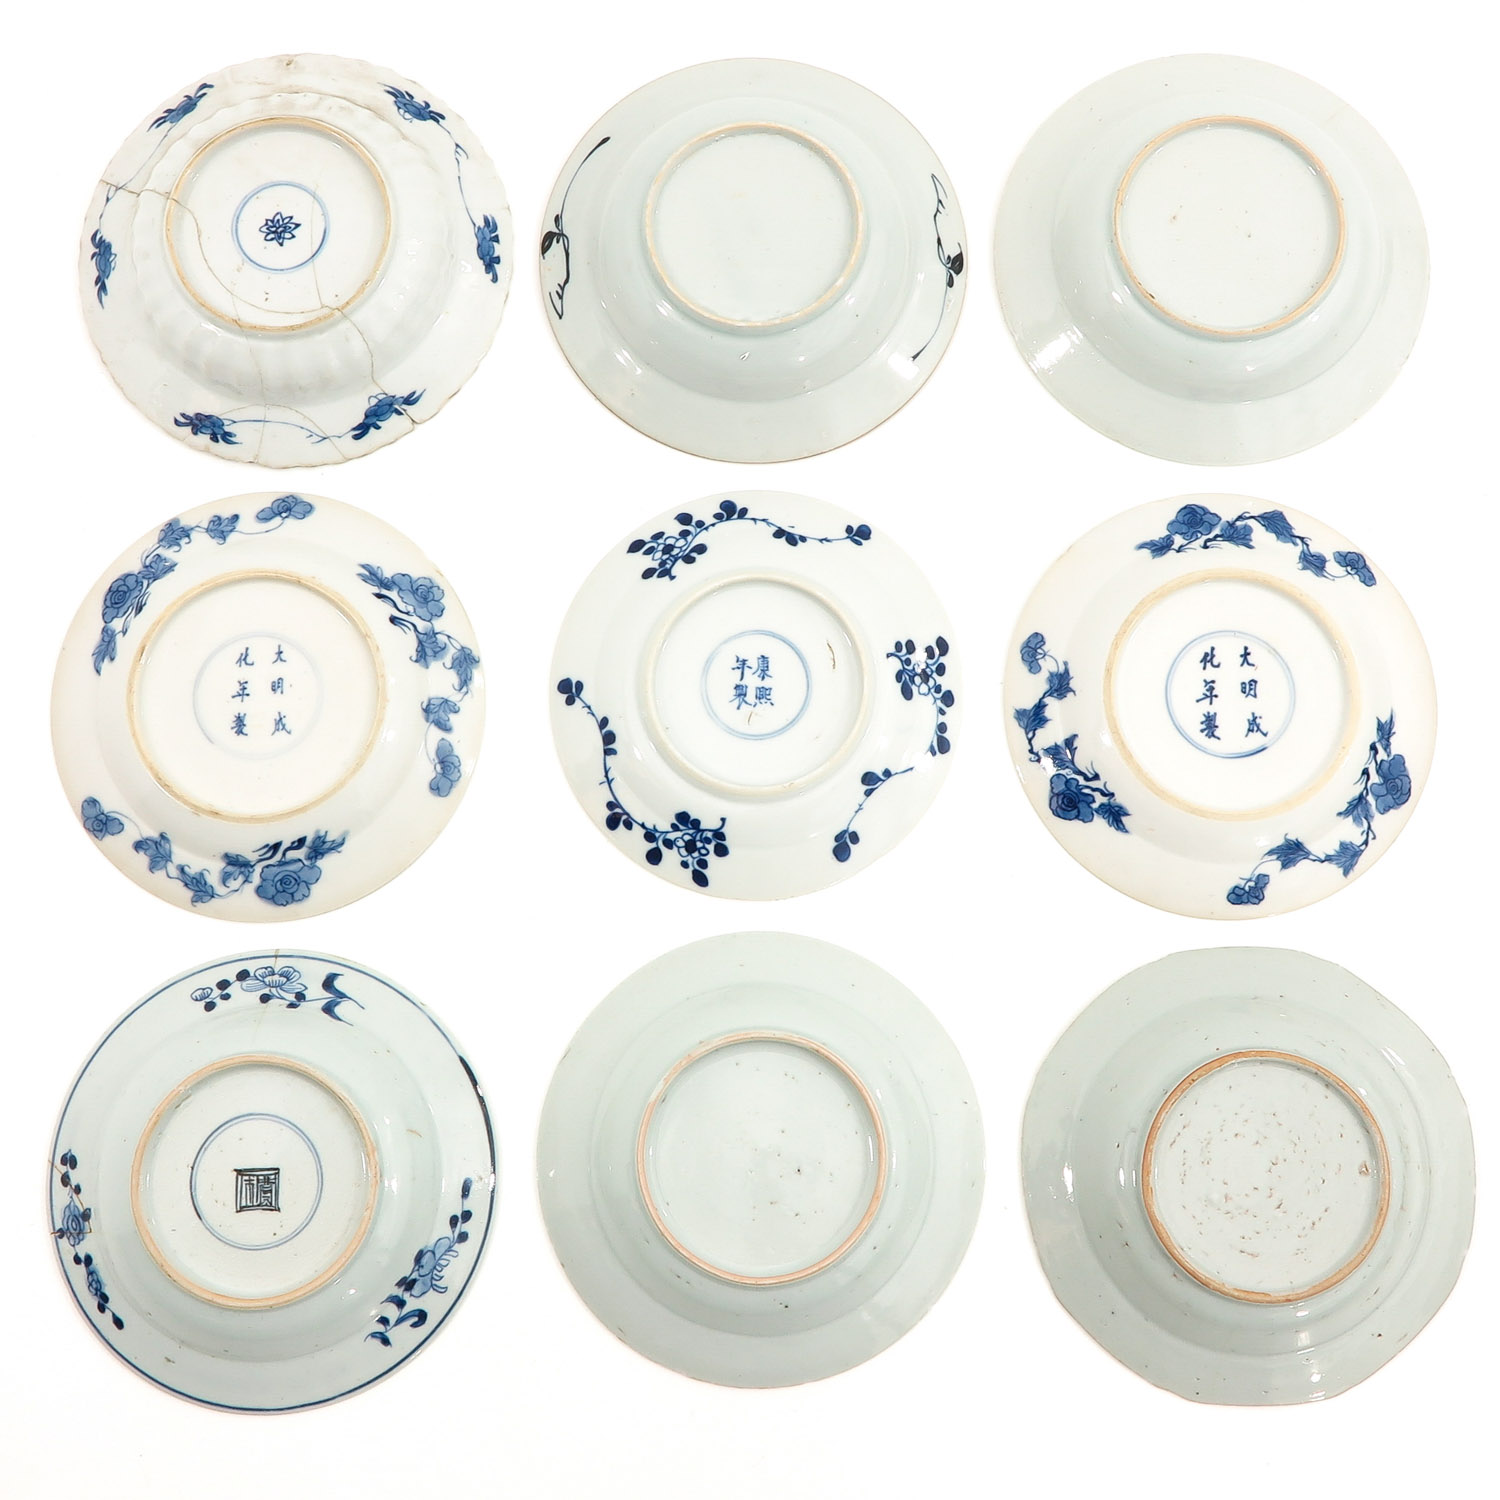 A Collection of 9 Blue and White Plates - Image 2 of 10